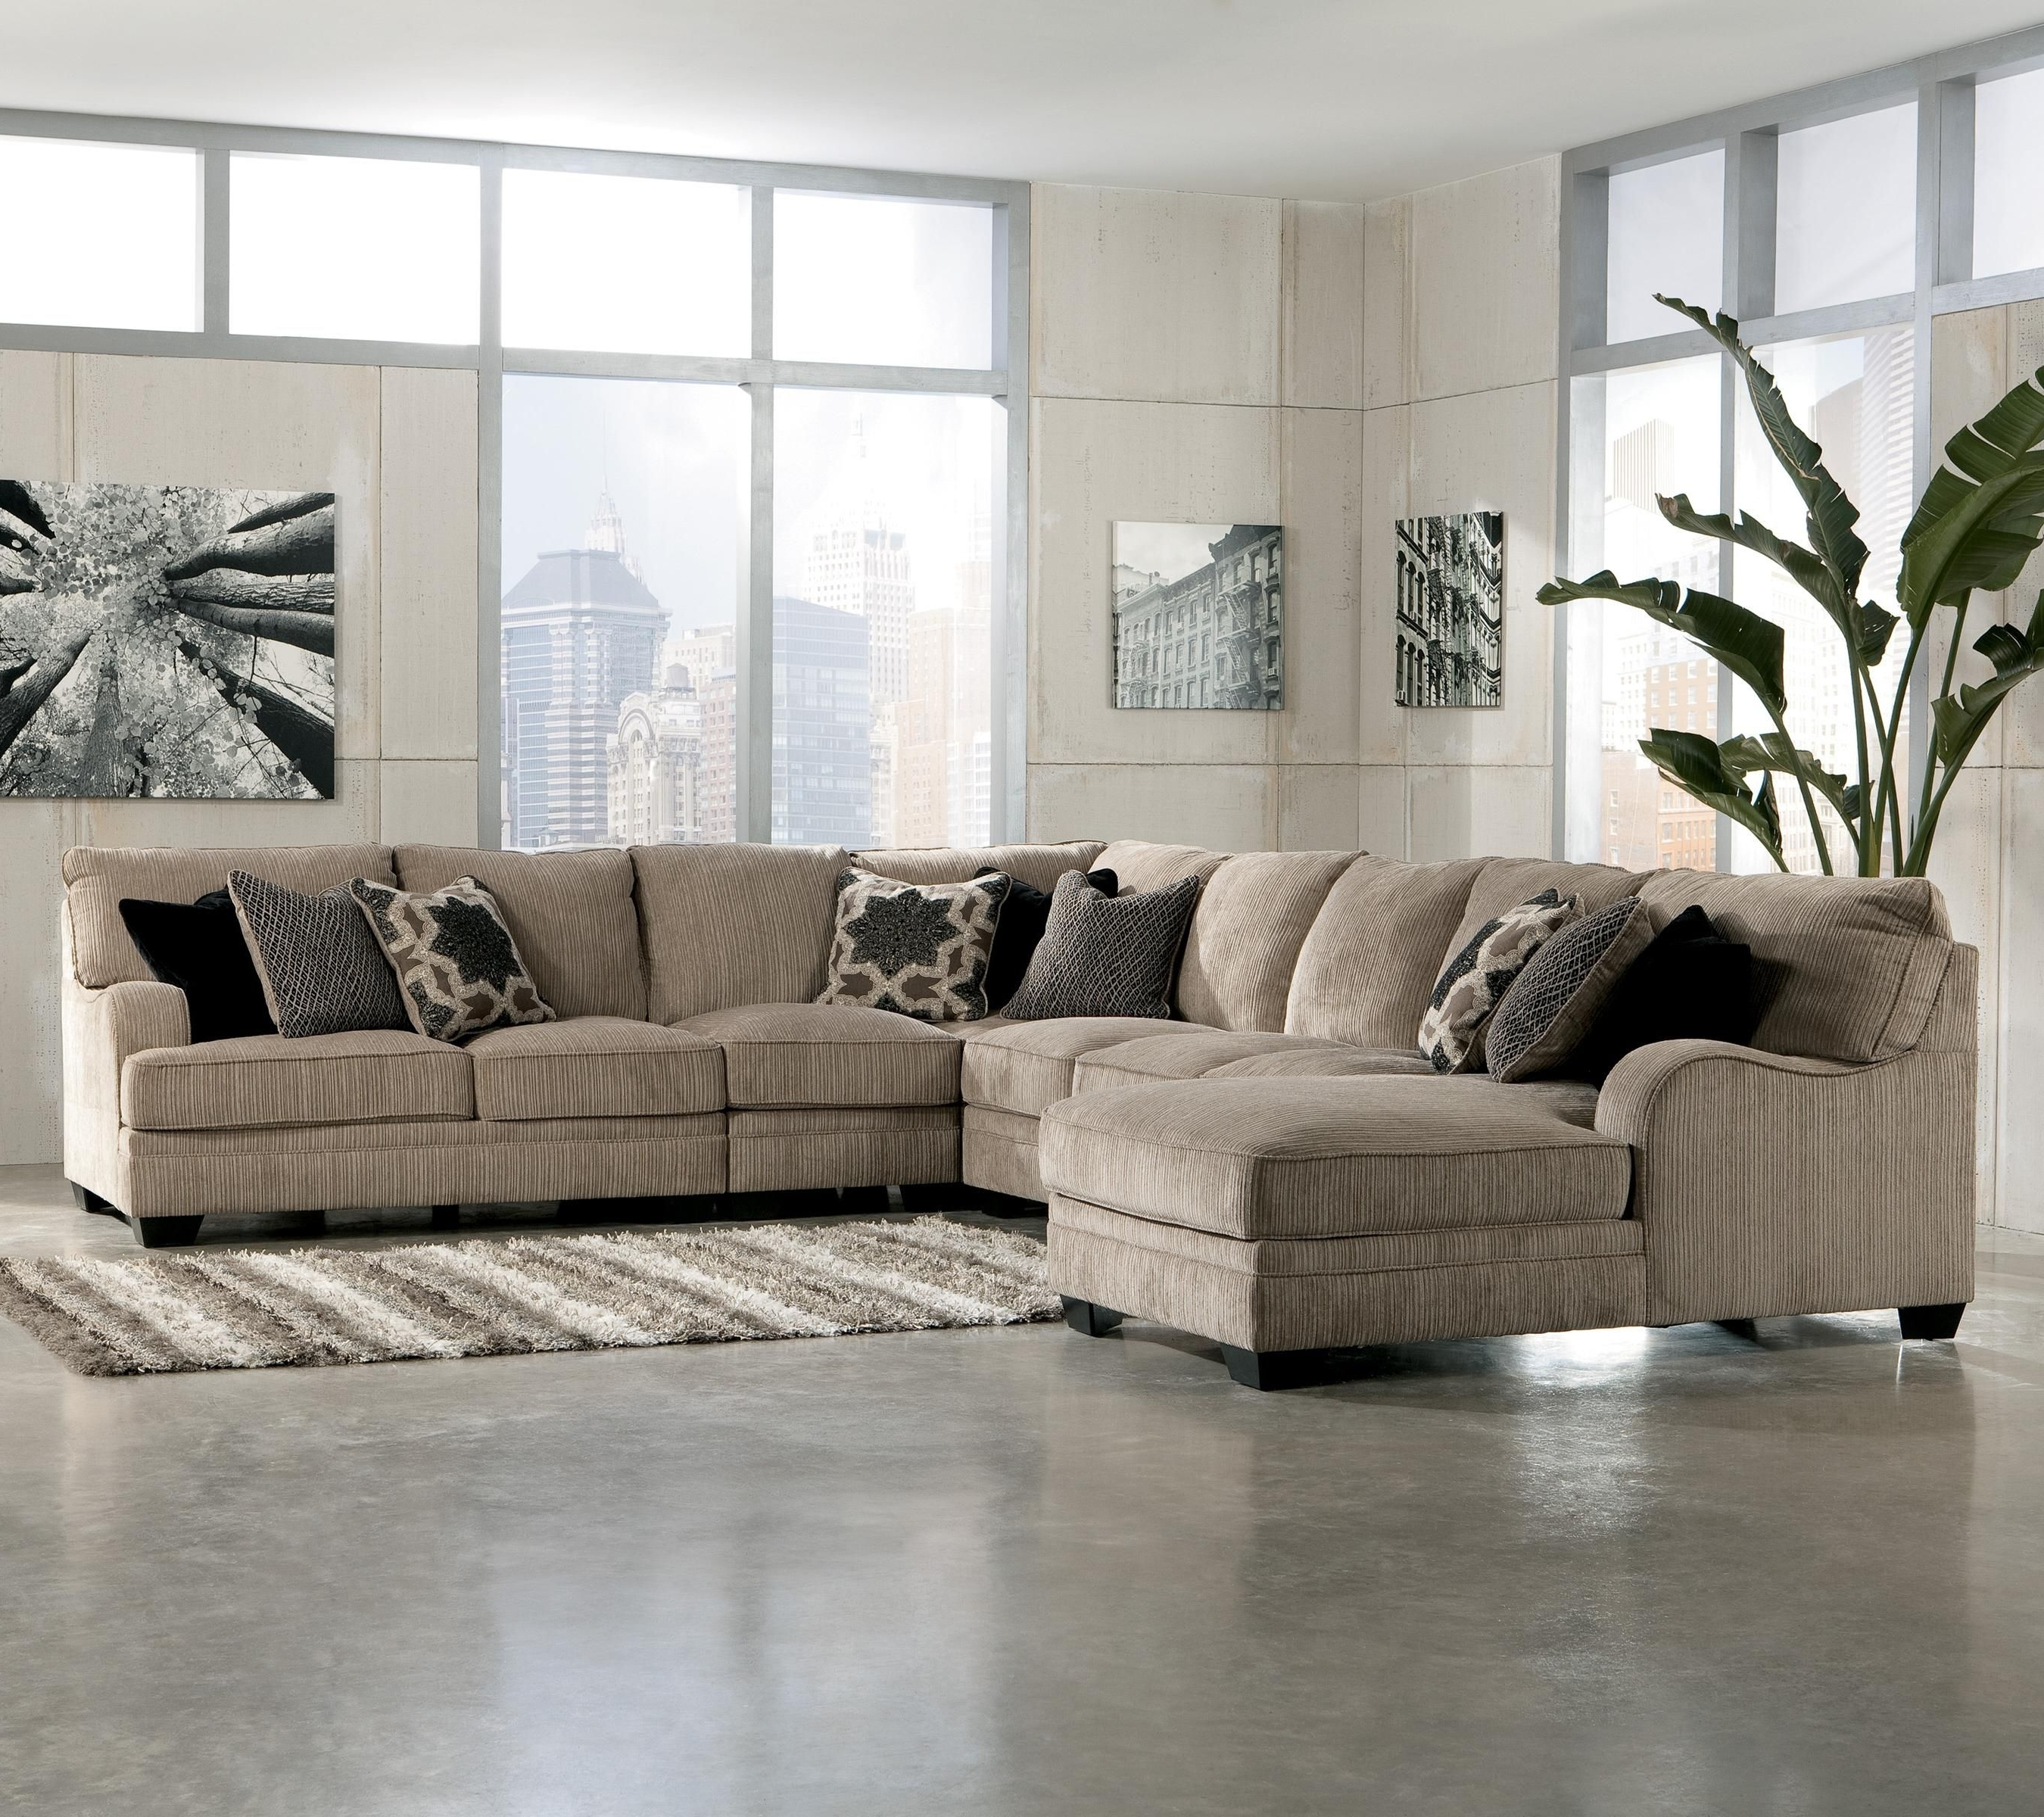 Most Recent Living Room Sectional: Katisha 4 Piece Sectionalashley Throughout Sectional Sofas At Ashley Furniture (View 9 of 15)